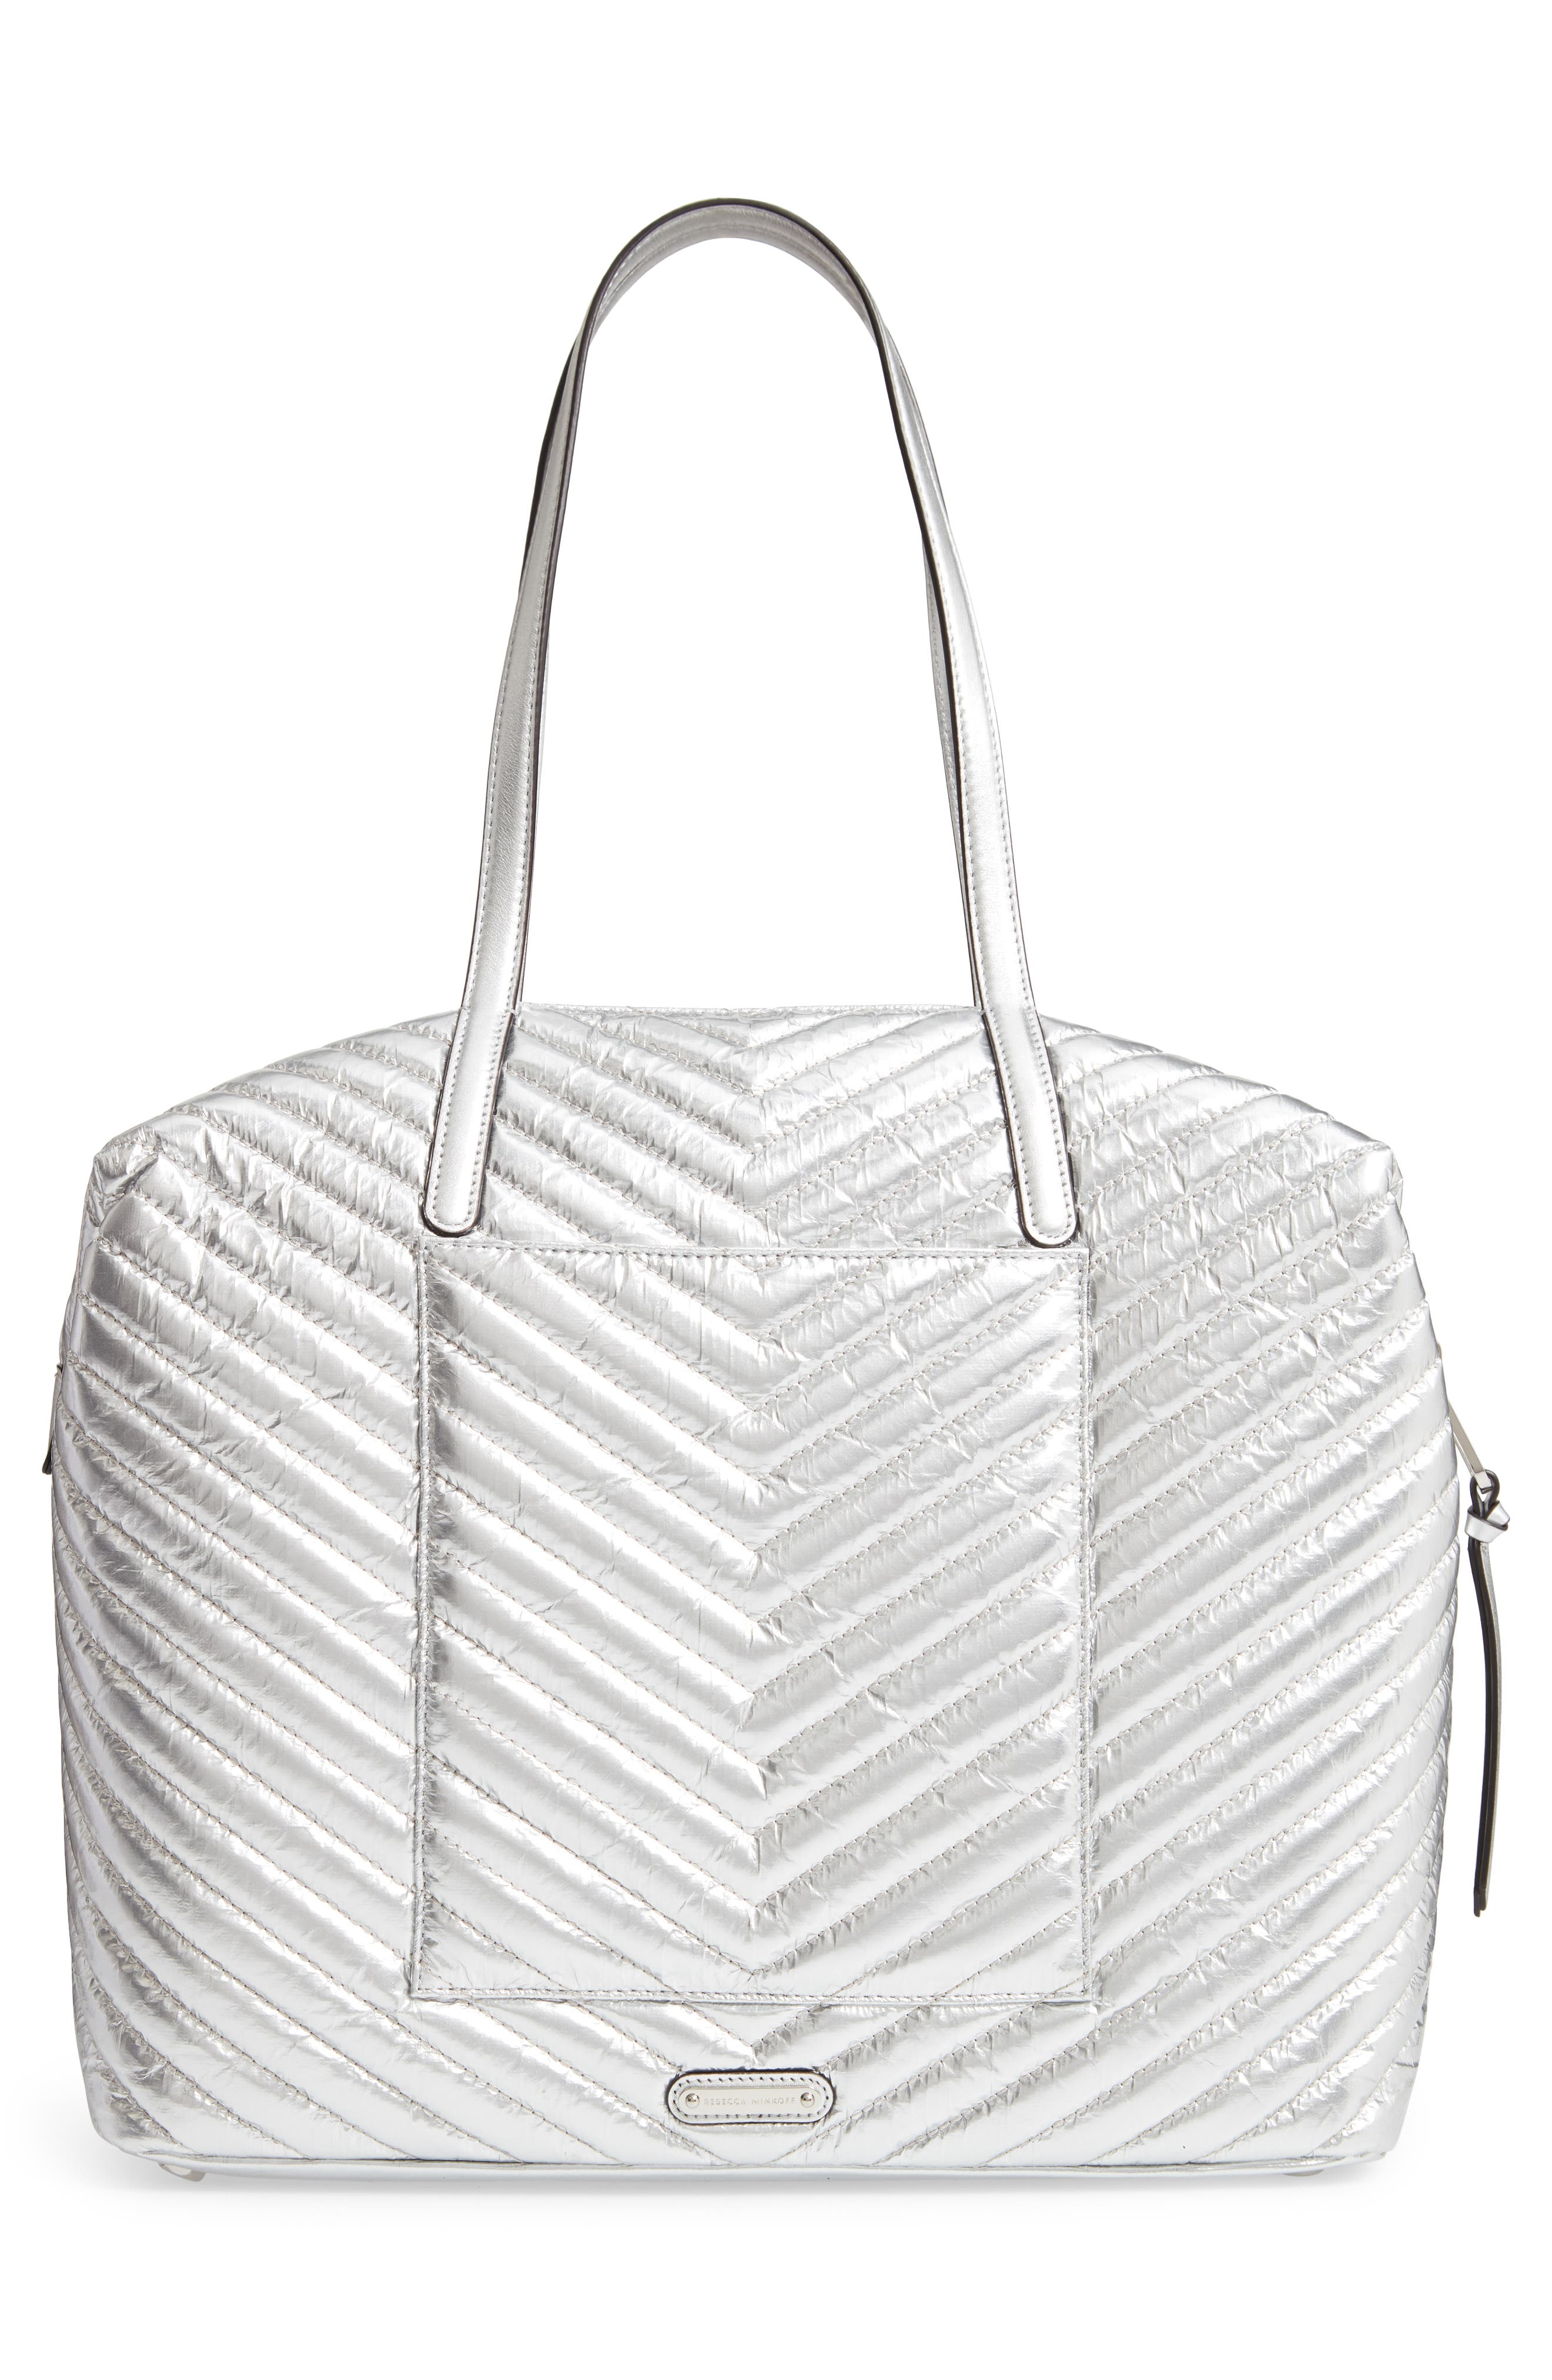 REBECCA MINKOFF, Quilted Nylon Tote, Alternate thumbnail 4, color, 040